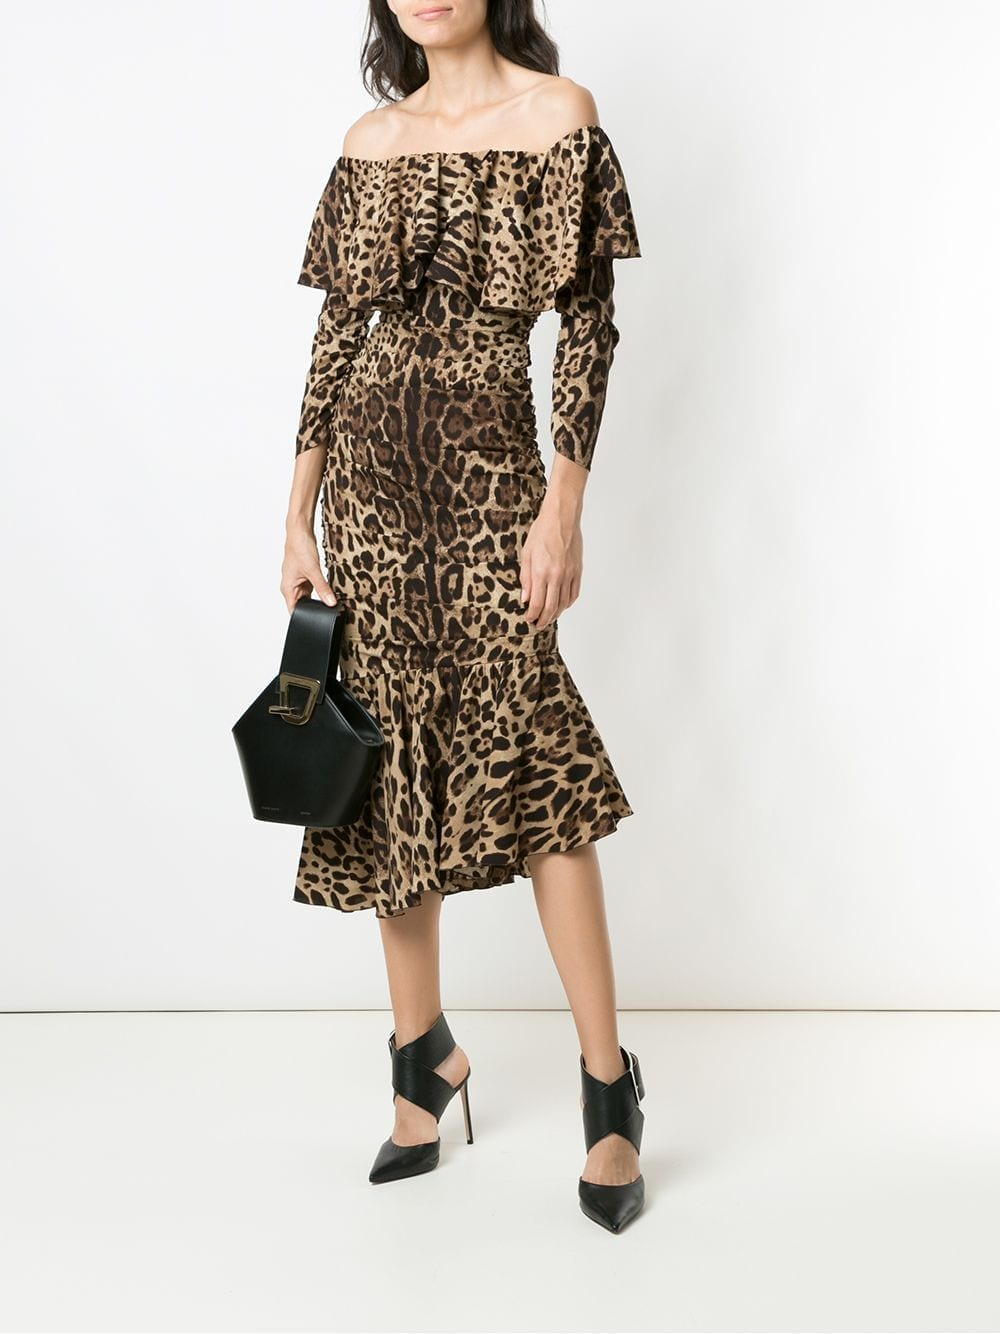 DOLCE & GABBANA Animal Print Peplum Hem Dress